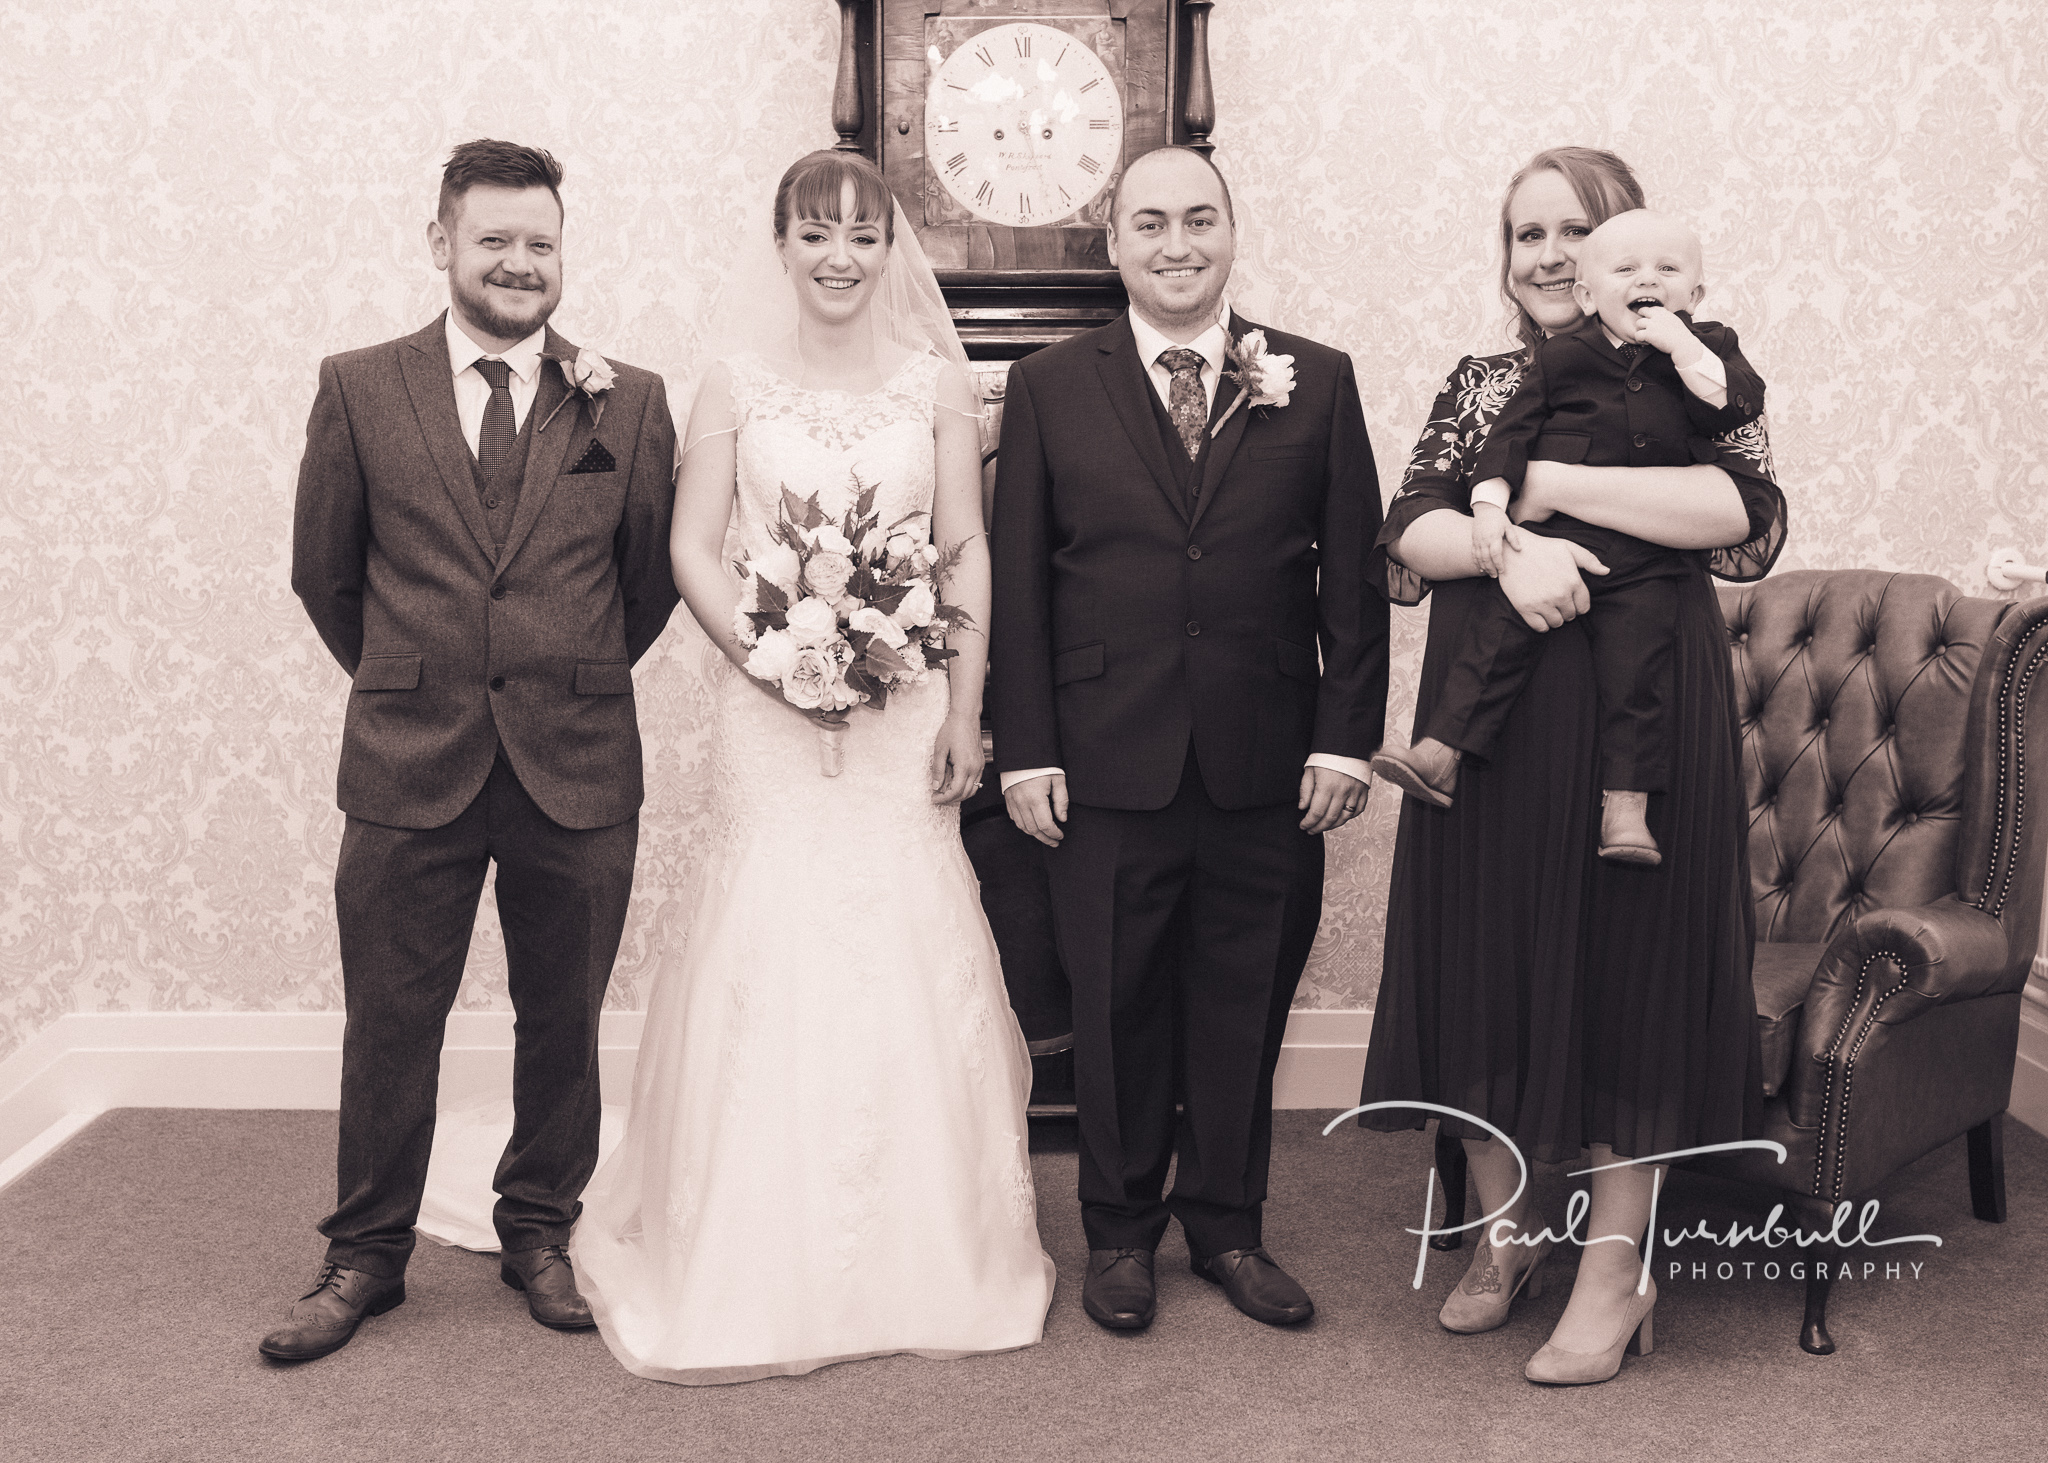 wedding-photographer-pontefract-yorkshire-laura-keanu-047.jpg